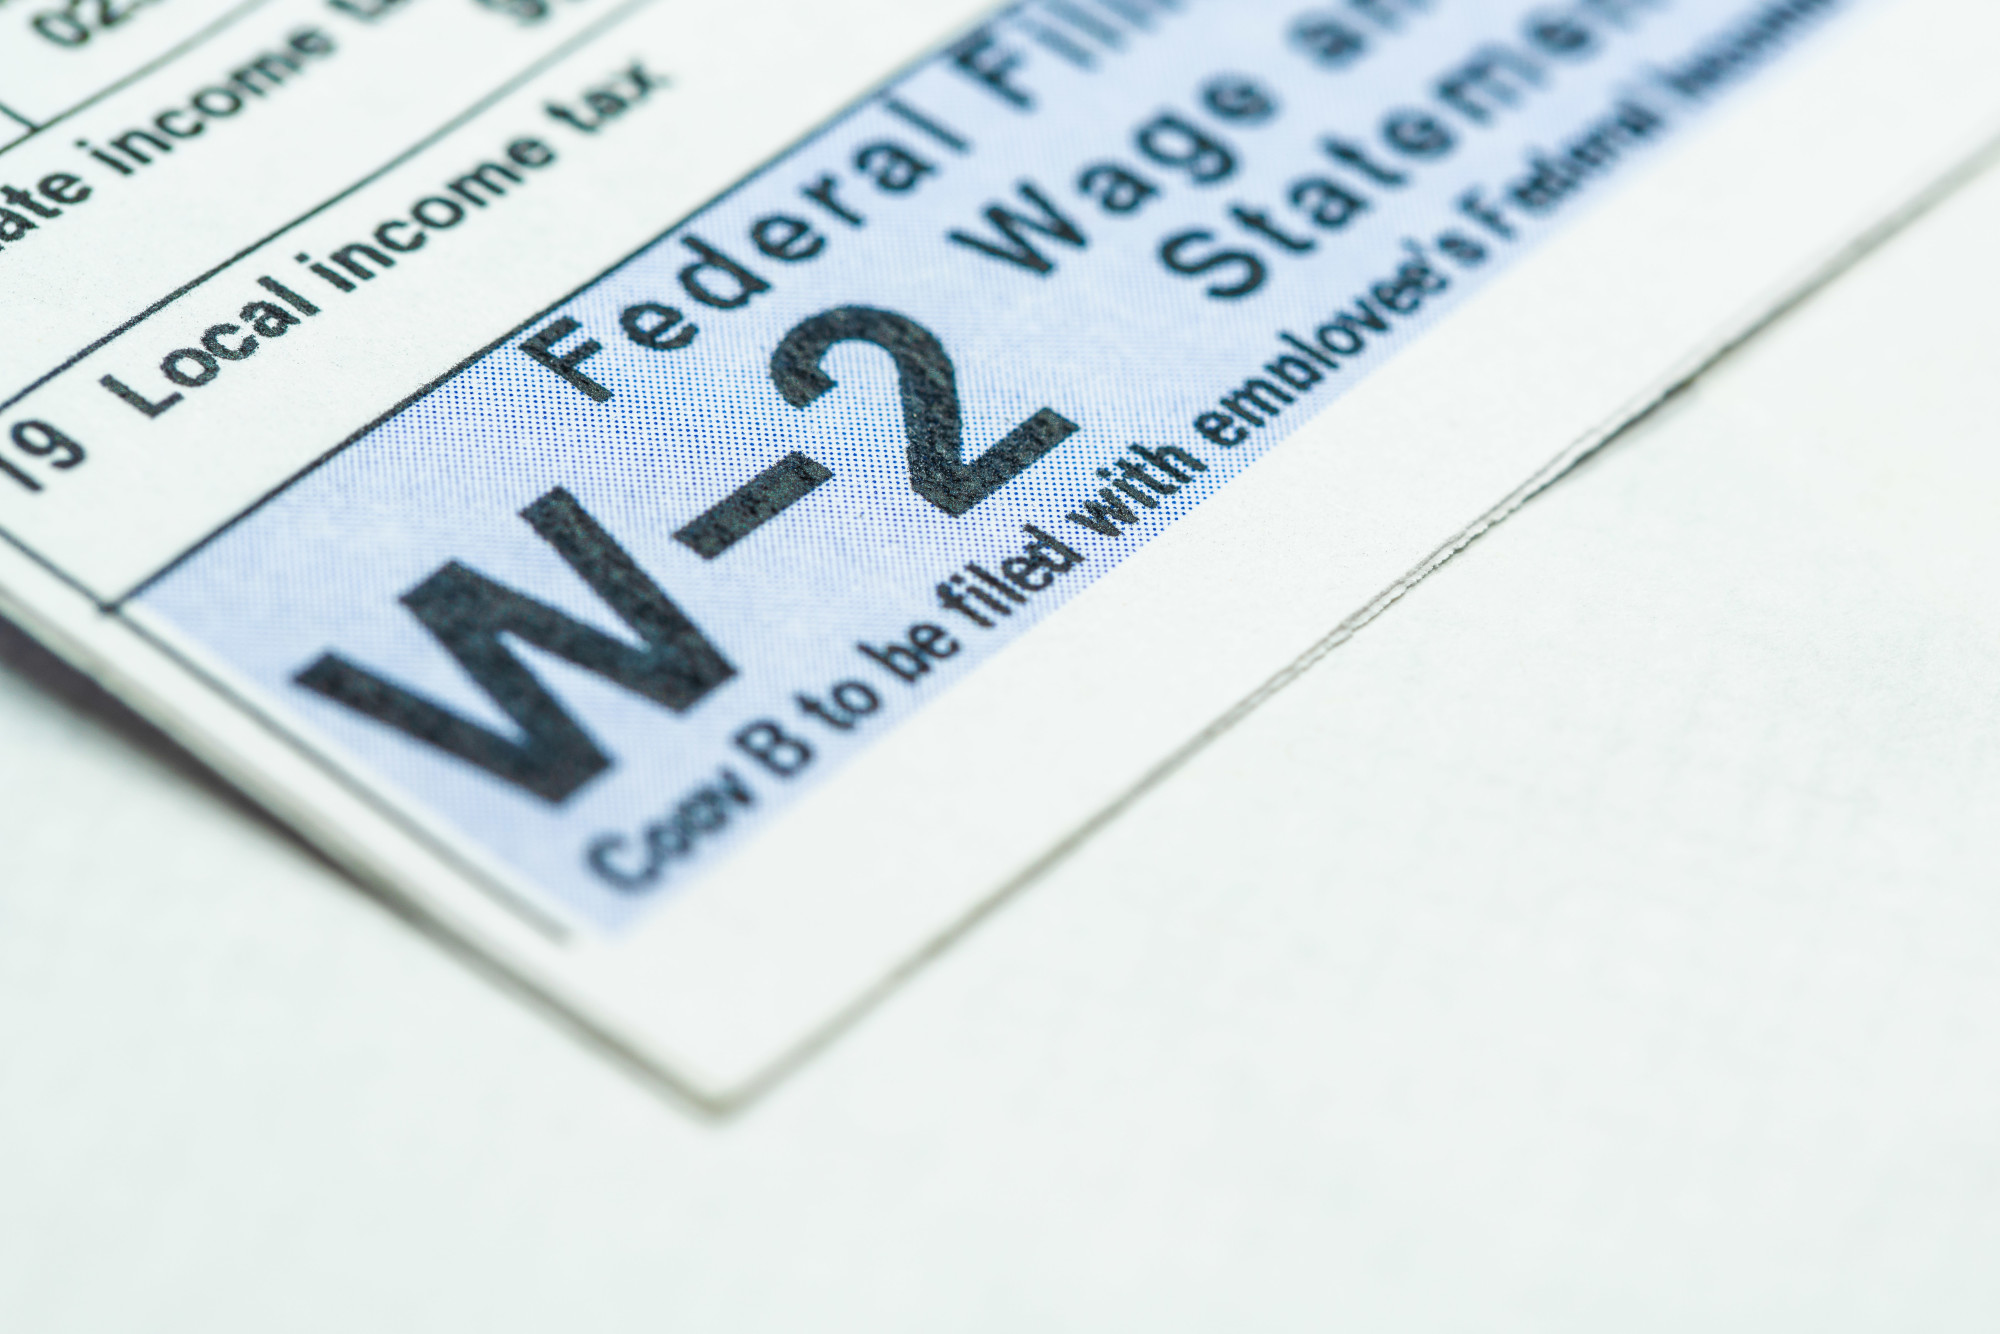 How to Read Your W-2: Simple Tips to Better Understand This Important Form